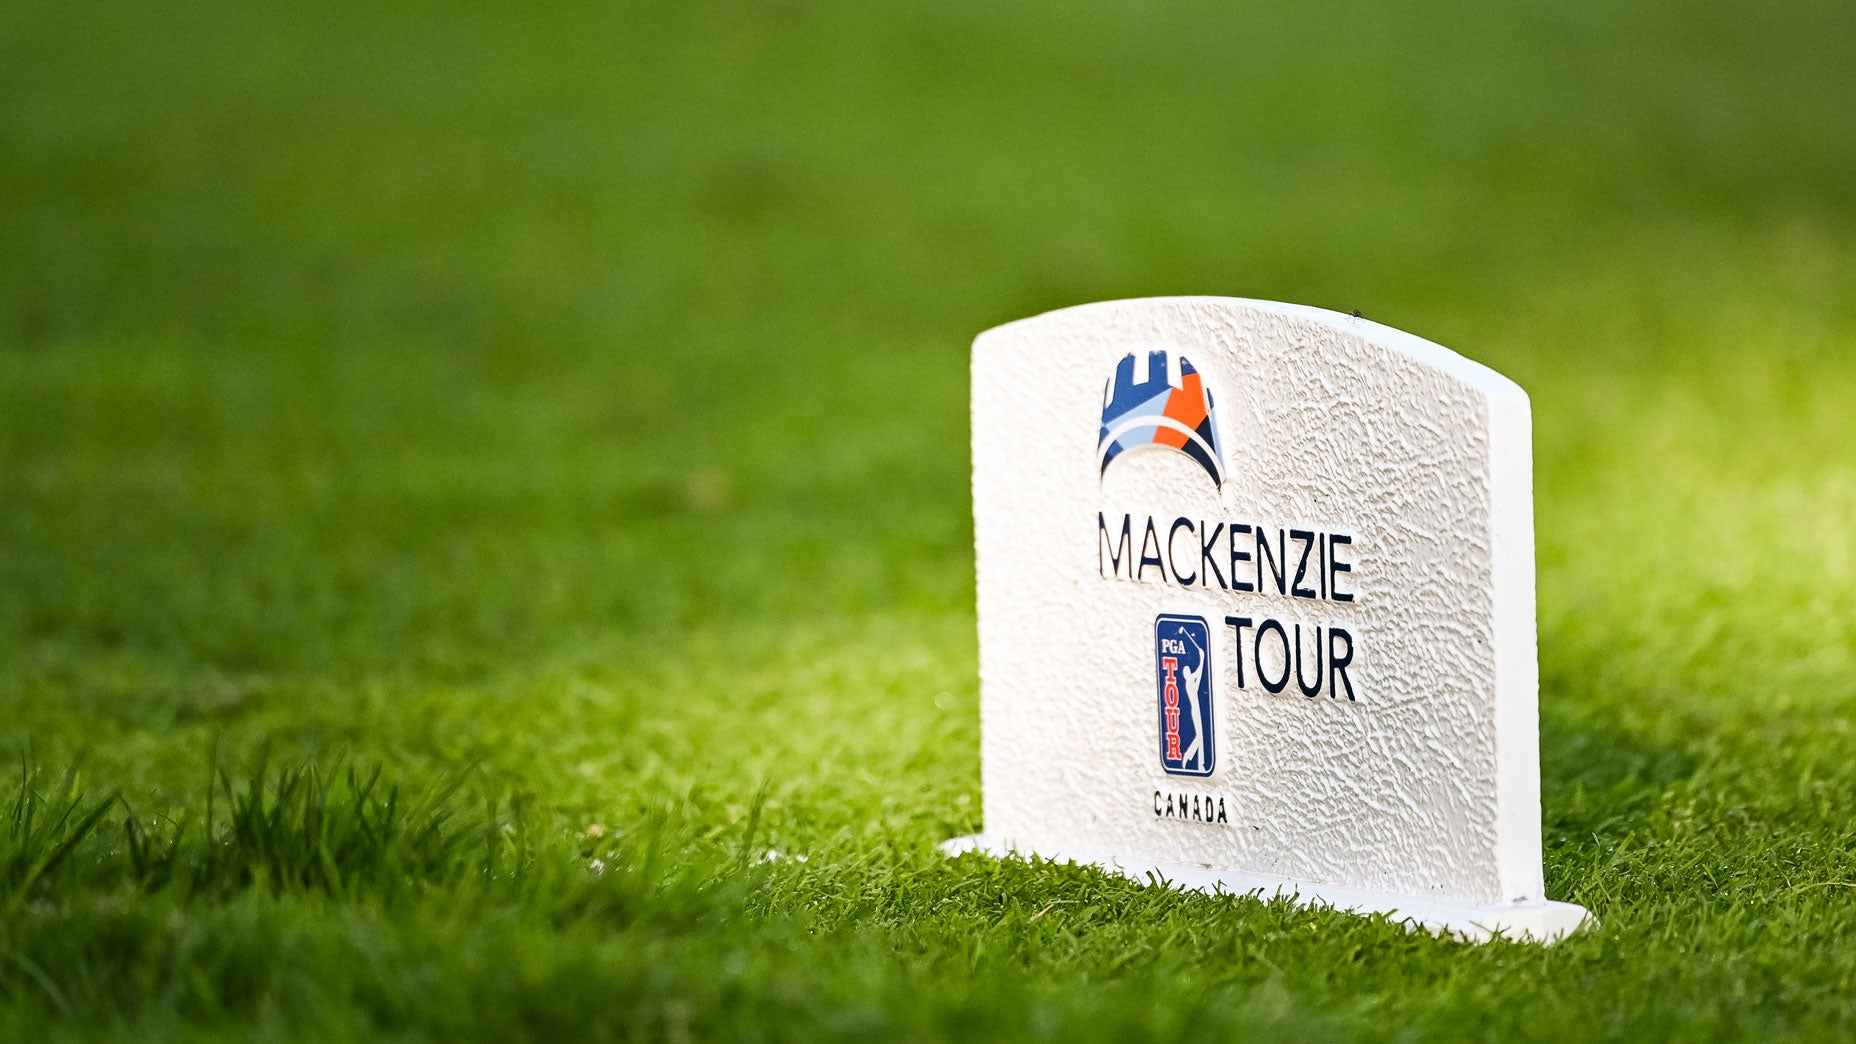 A tee marker with the Mackenzie Tour - PGA Tour Canada logo.